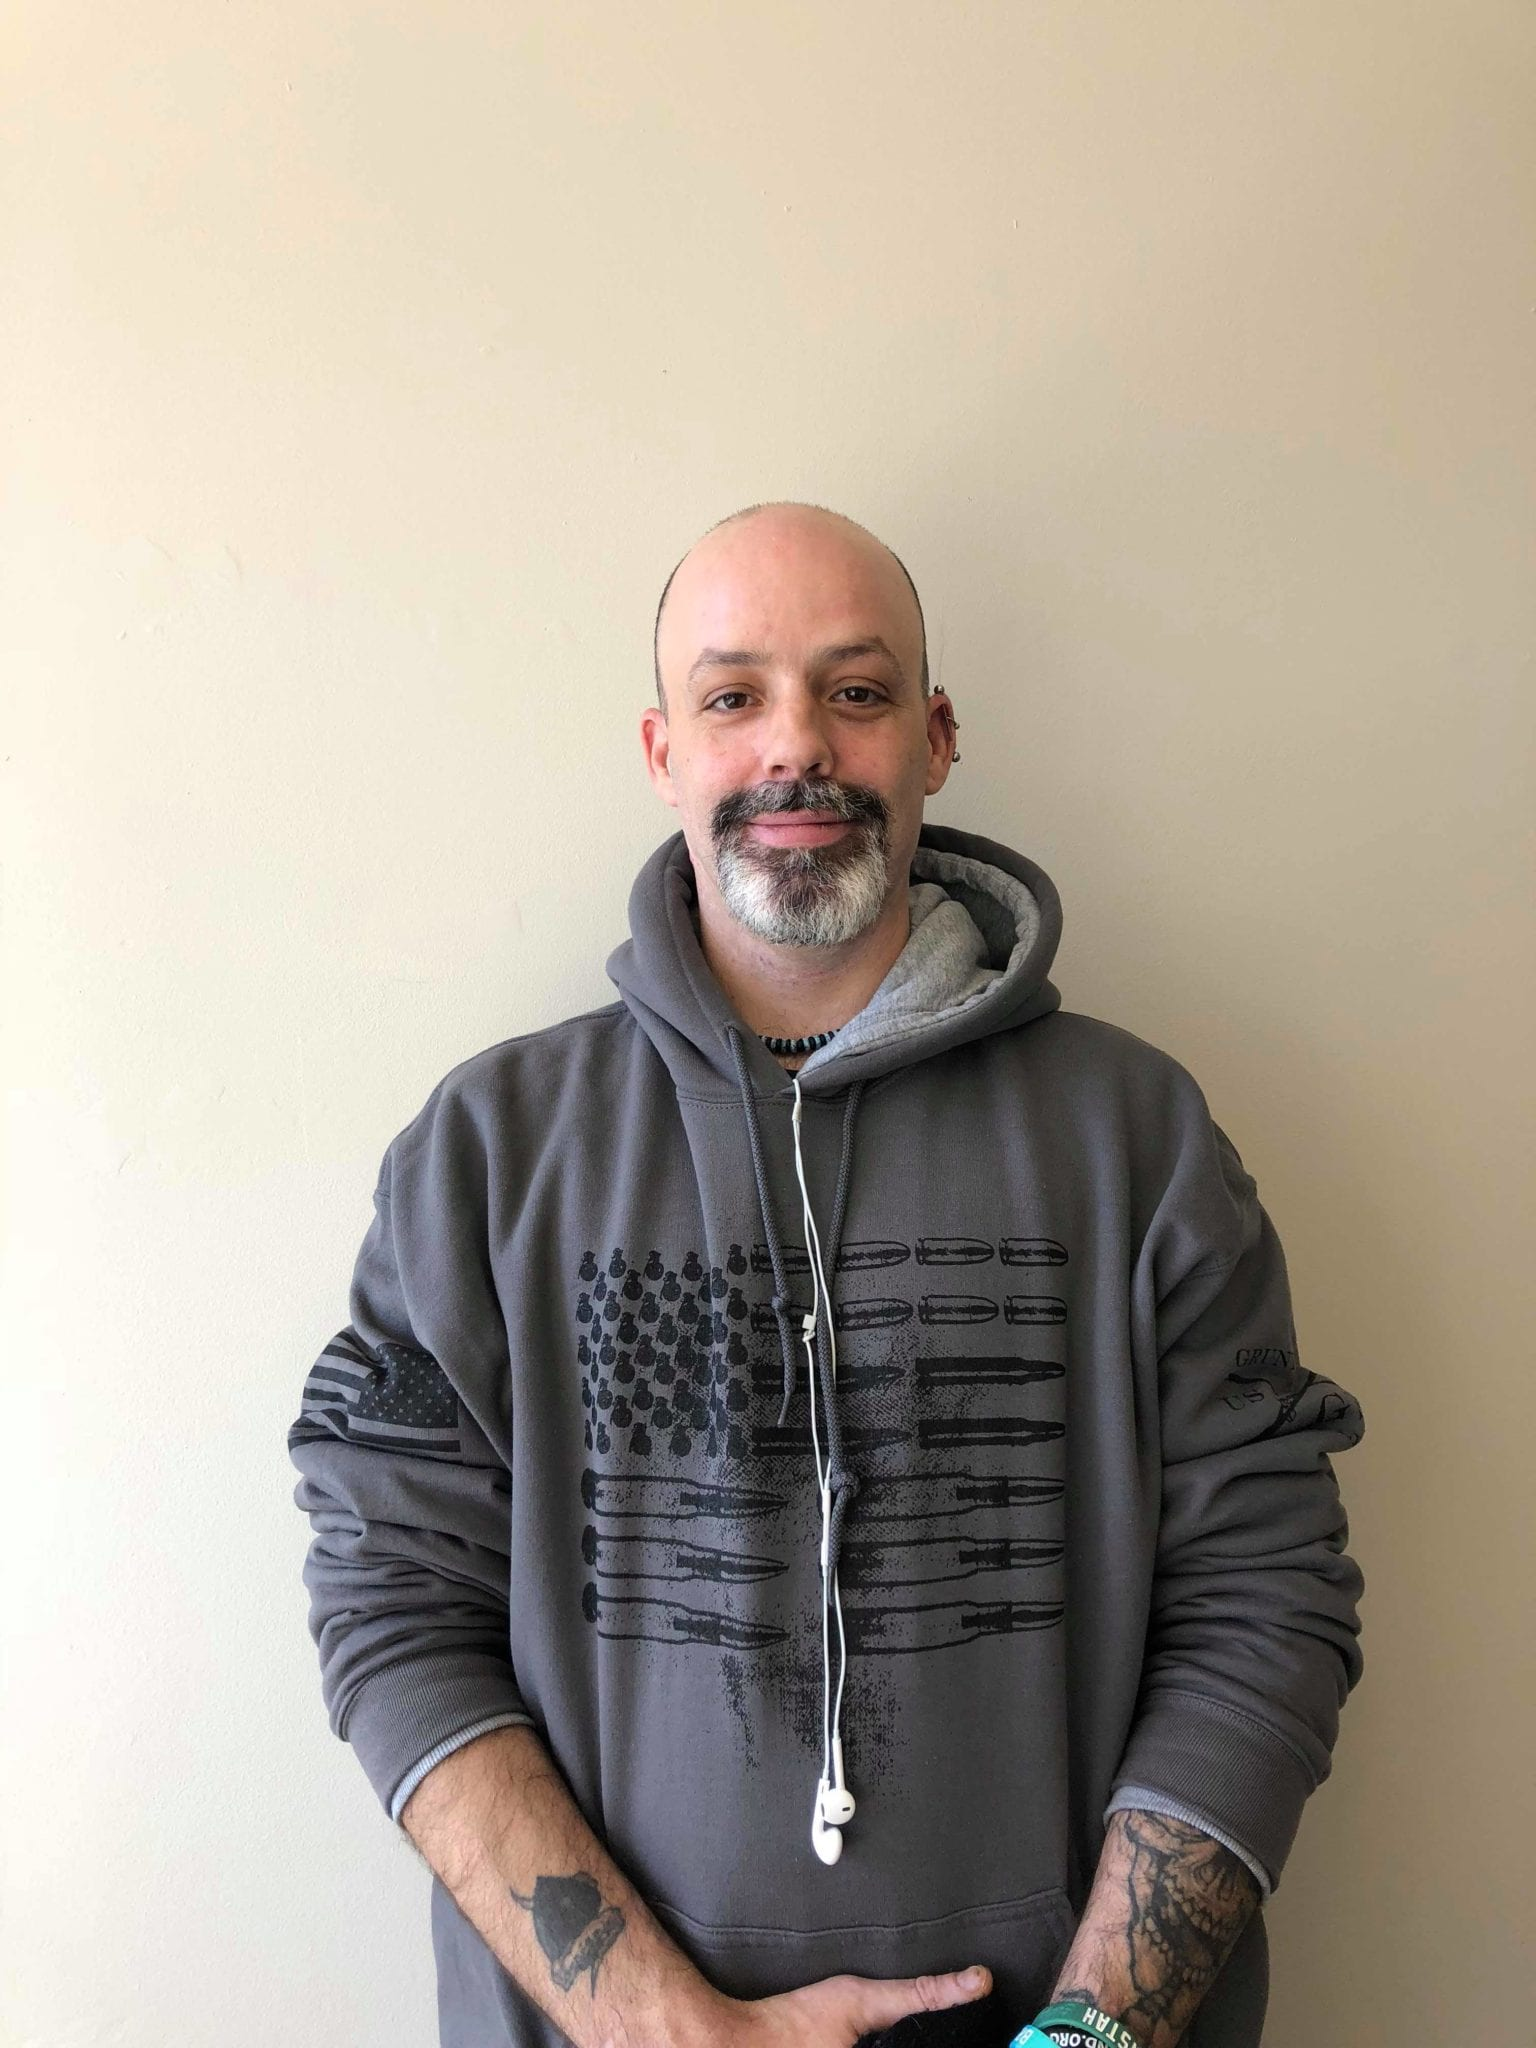 Steve Jutras, Recovery Coach at Boston Police Department